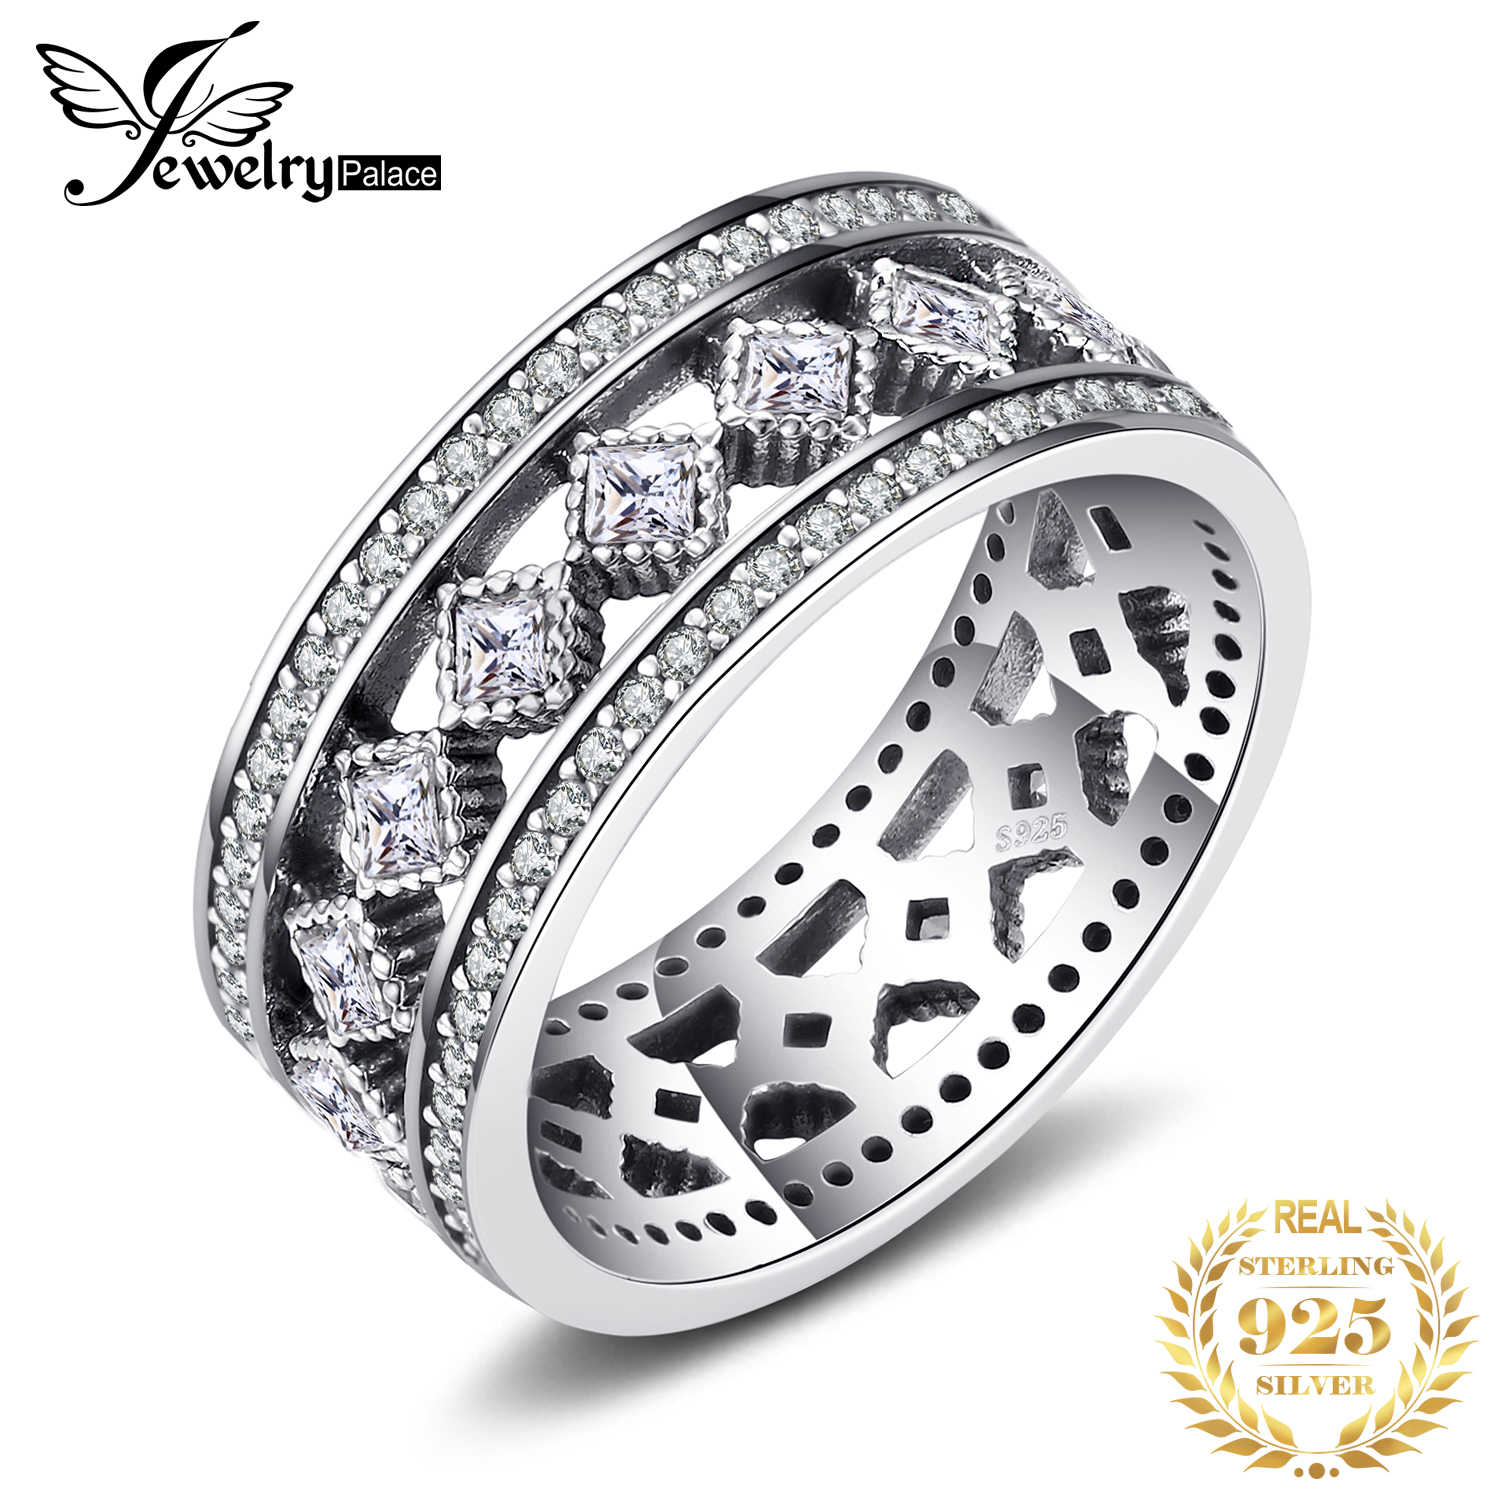 Jewelrypalace 925 Sterling Silver Vintage enchantment Hollow-out Cocktail Ring Round Fashion Jewelry Steel Rings For Woman/Girls